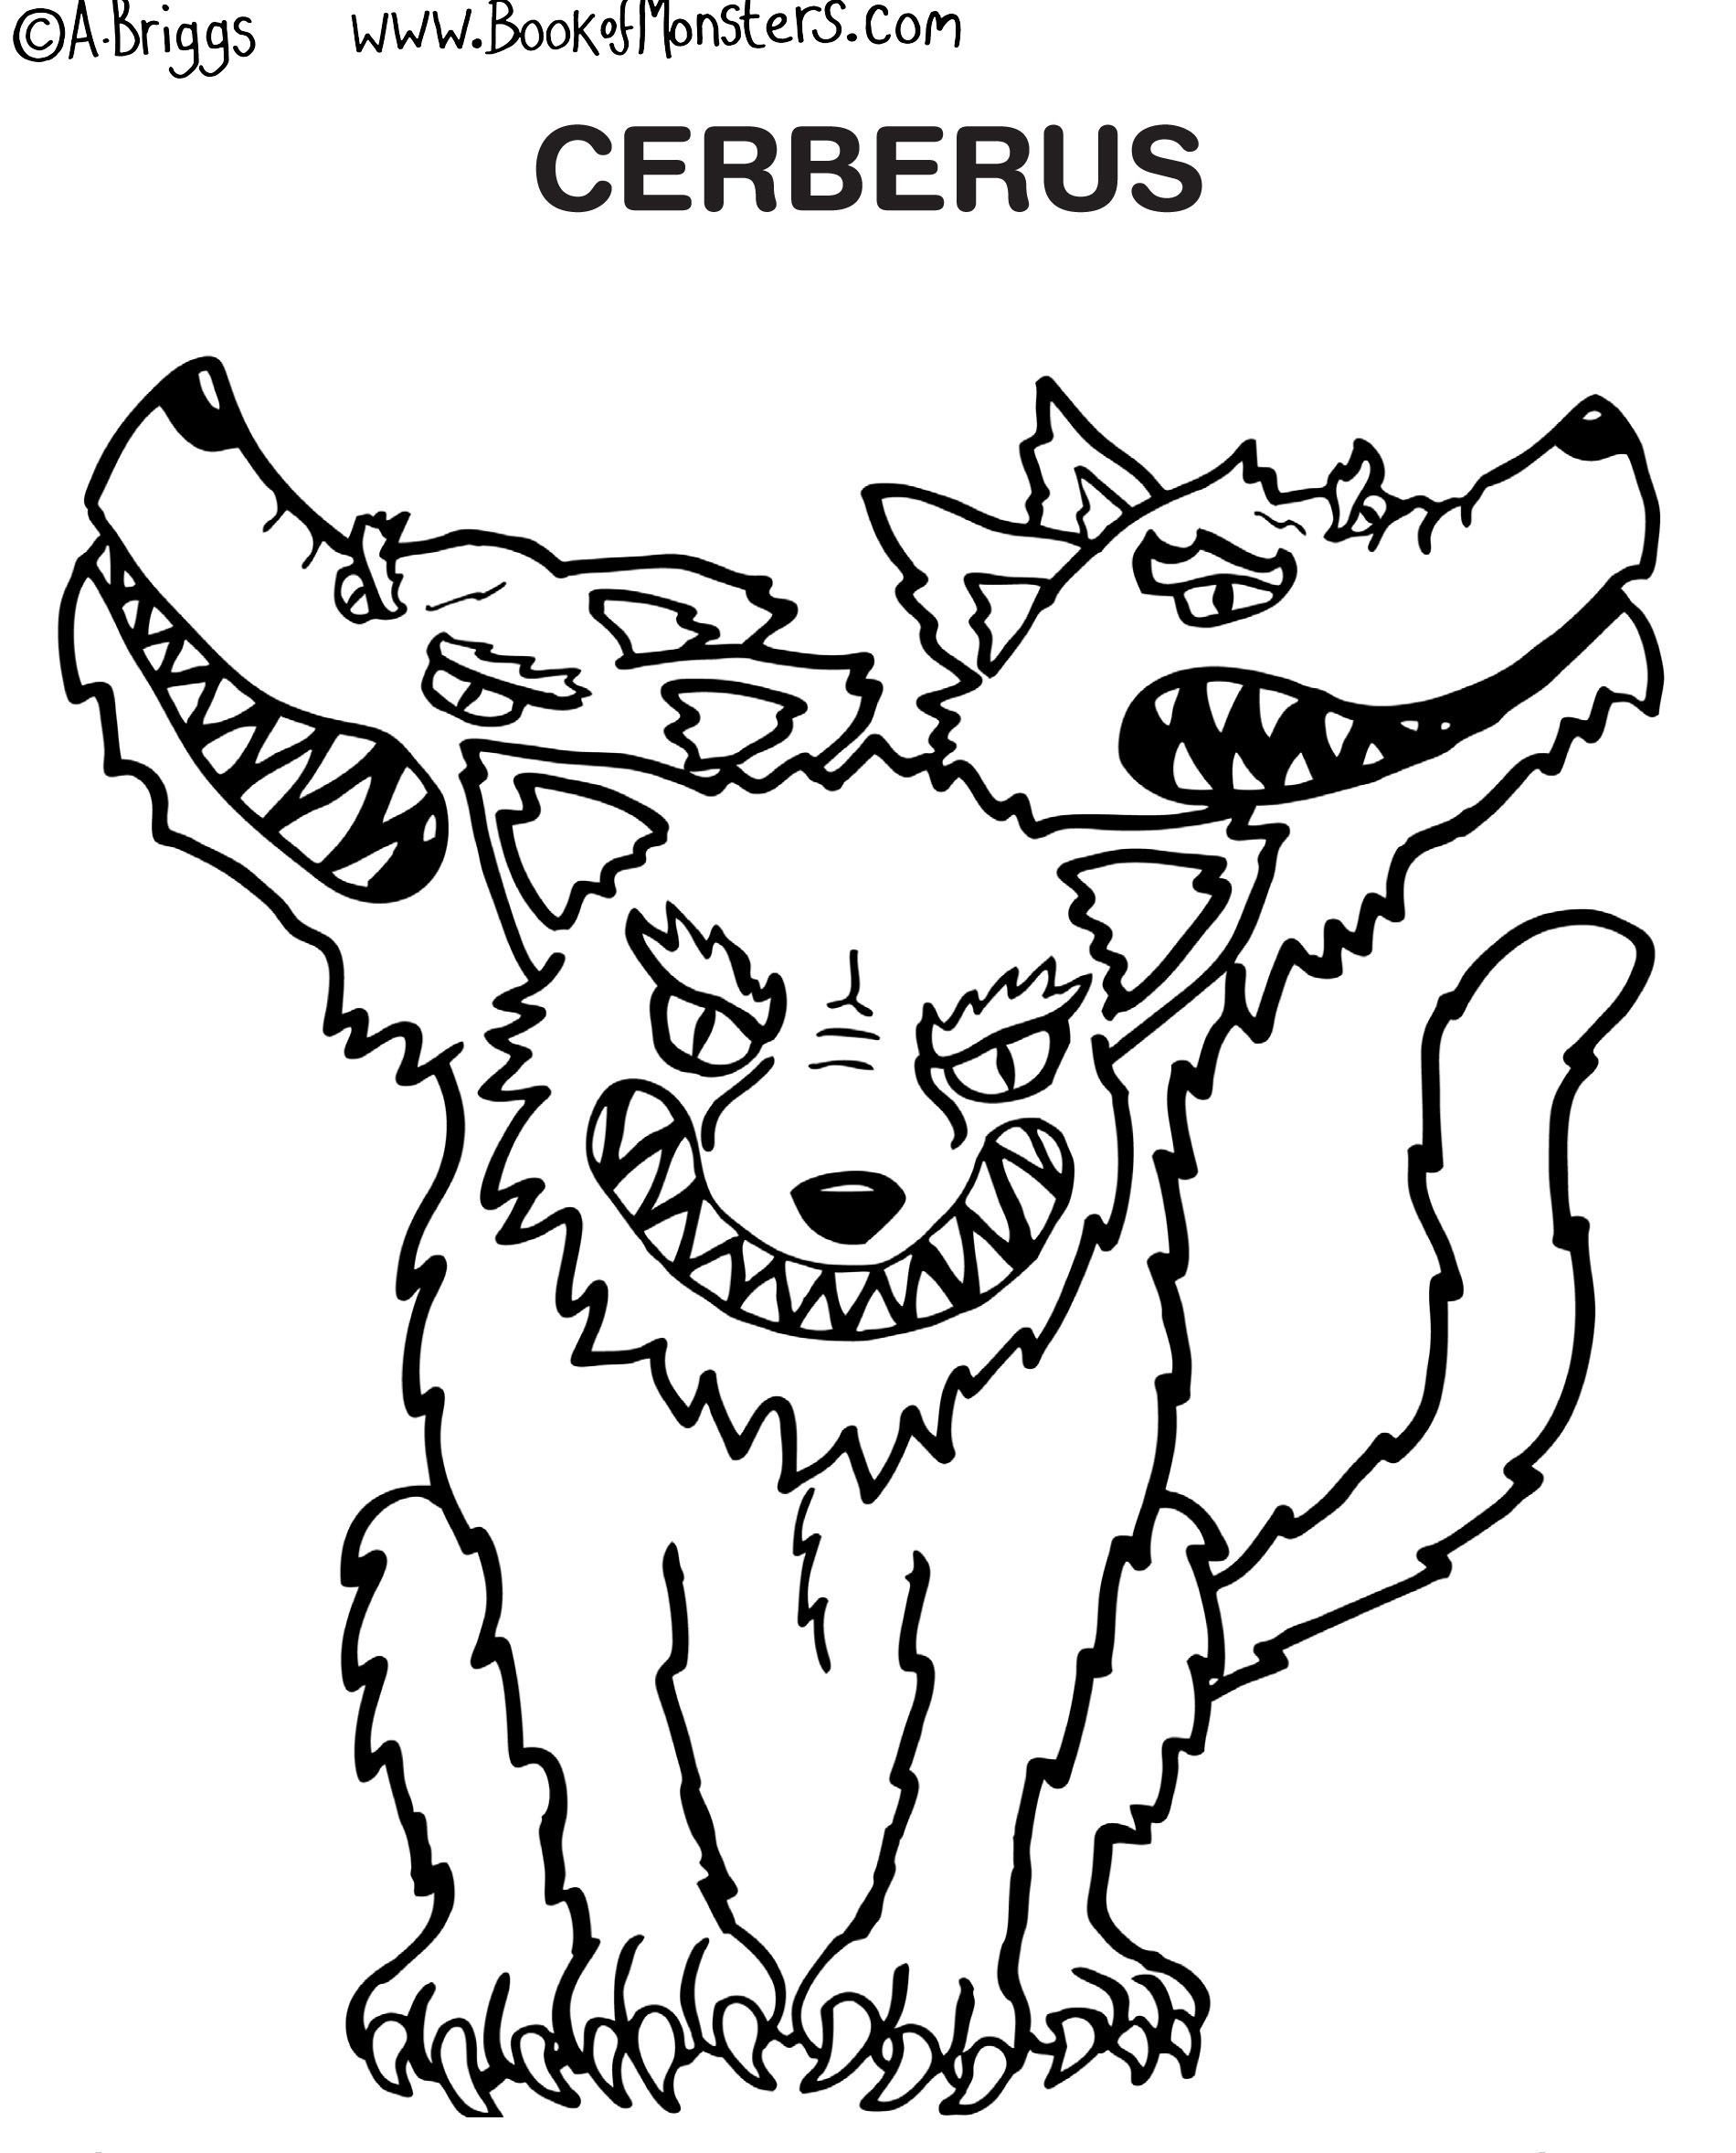 Book of Monsters coloring page for kidsCerberus  Greek Mythology